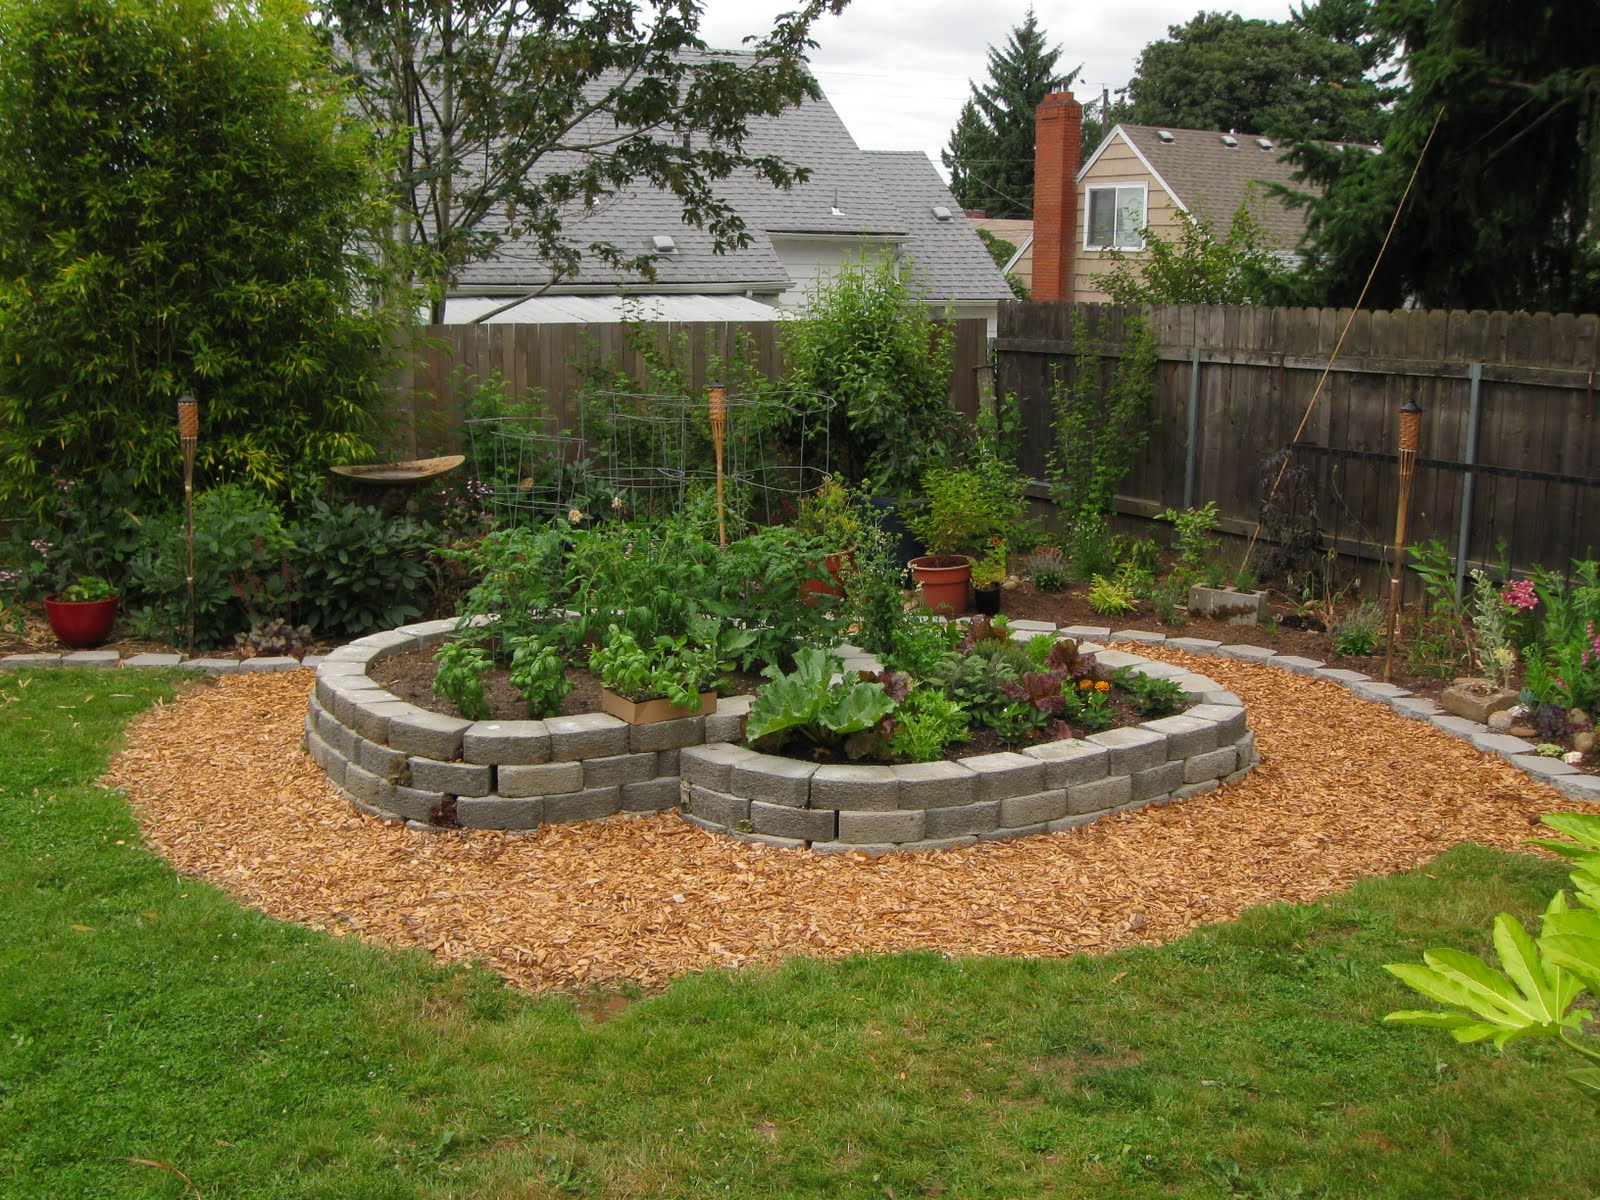 Simple landscaping ideas with low maintenance design and for Easy garden designs ideas